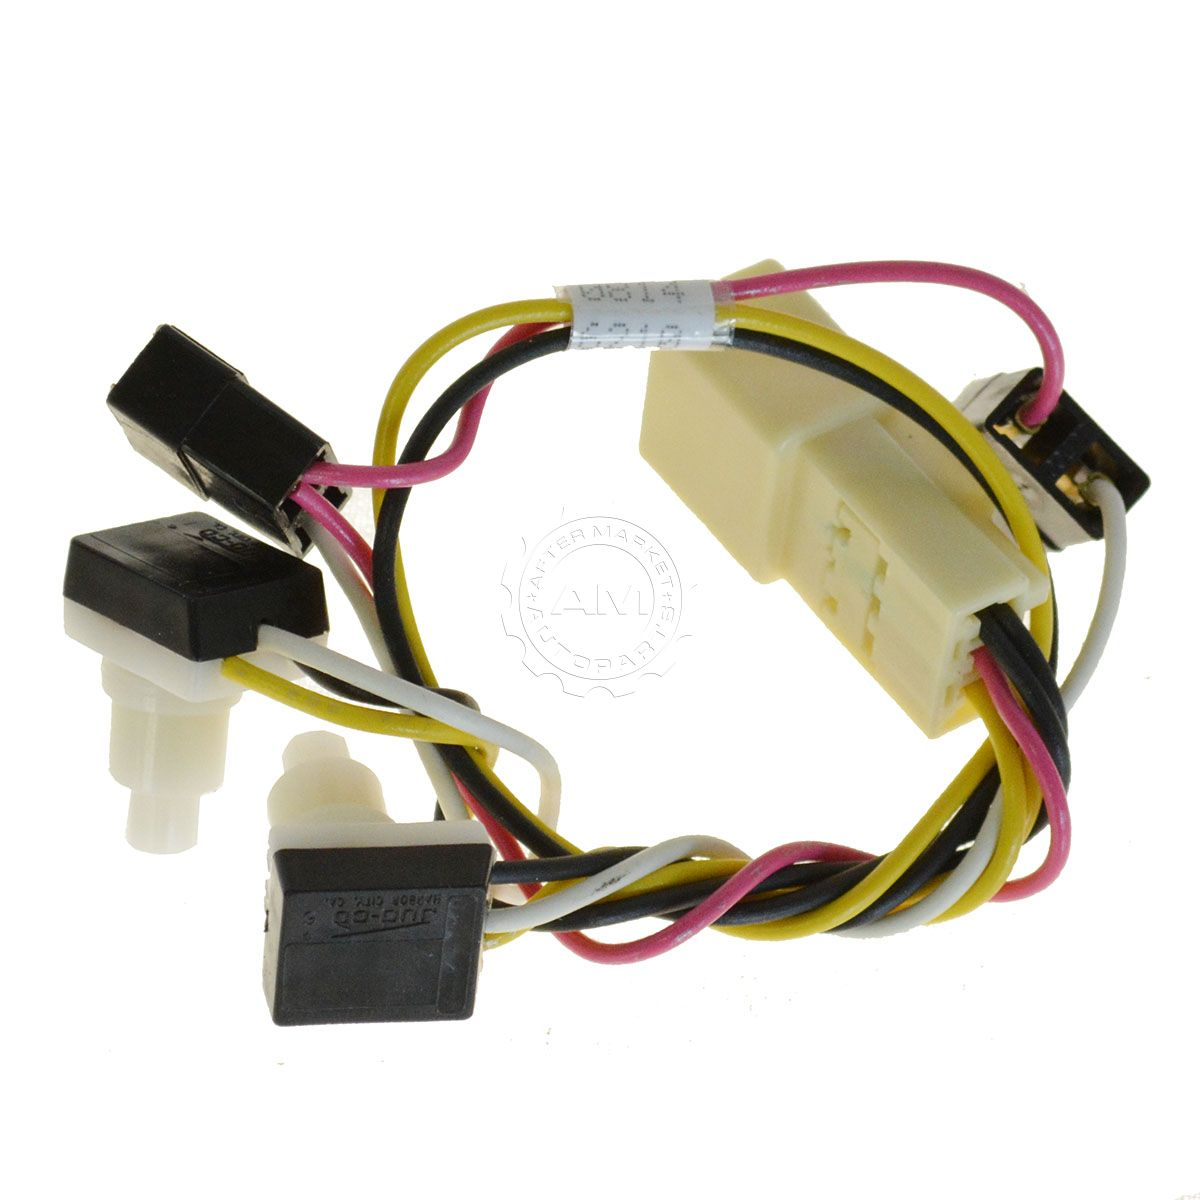 AM 1654819132 oem overhead console map light wiring harness & switches for dodge  at n-0.co